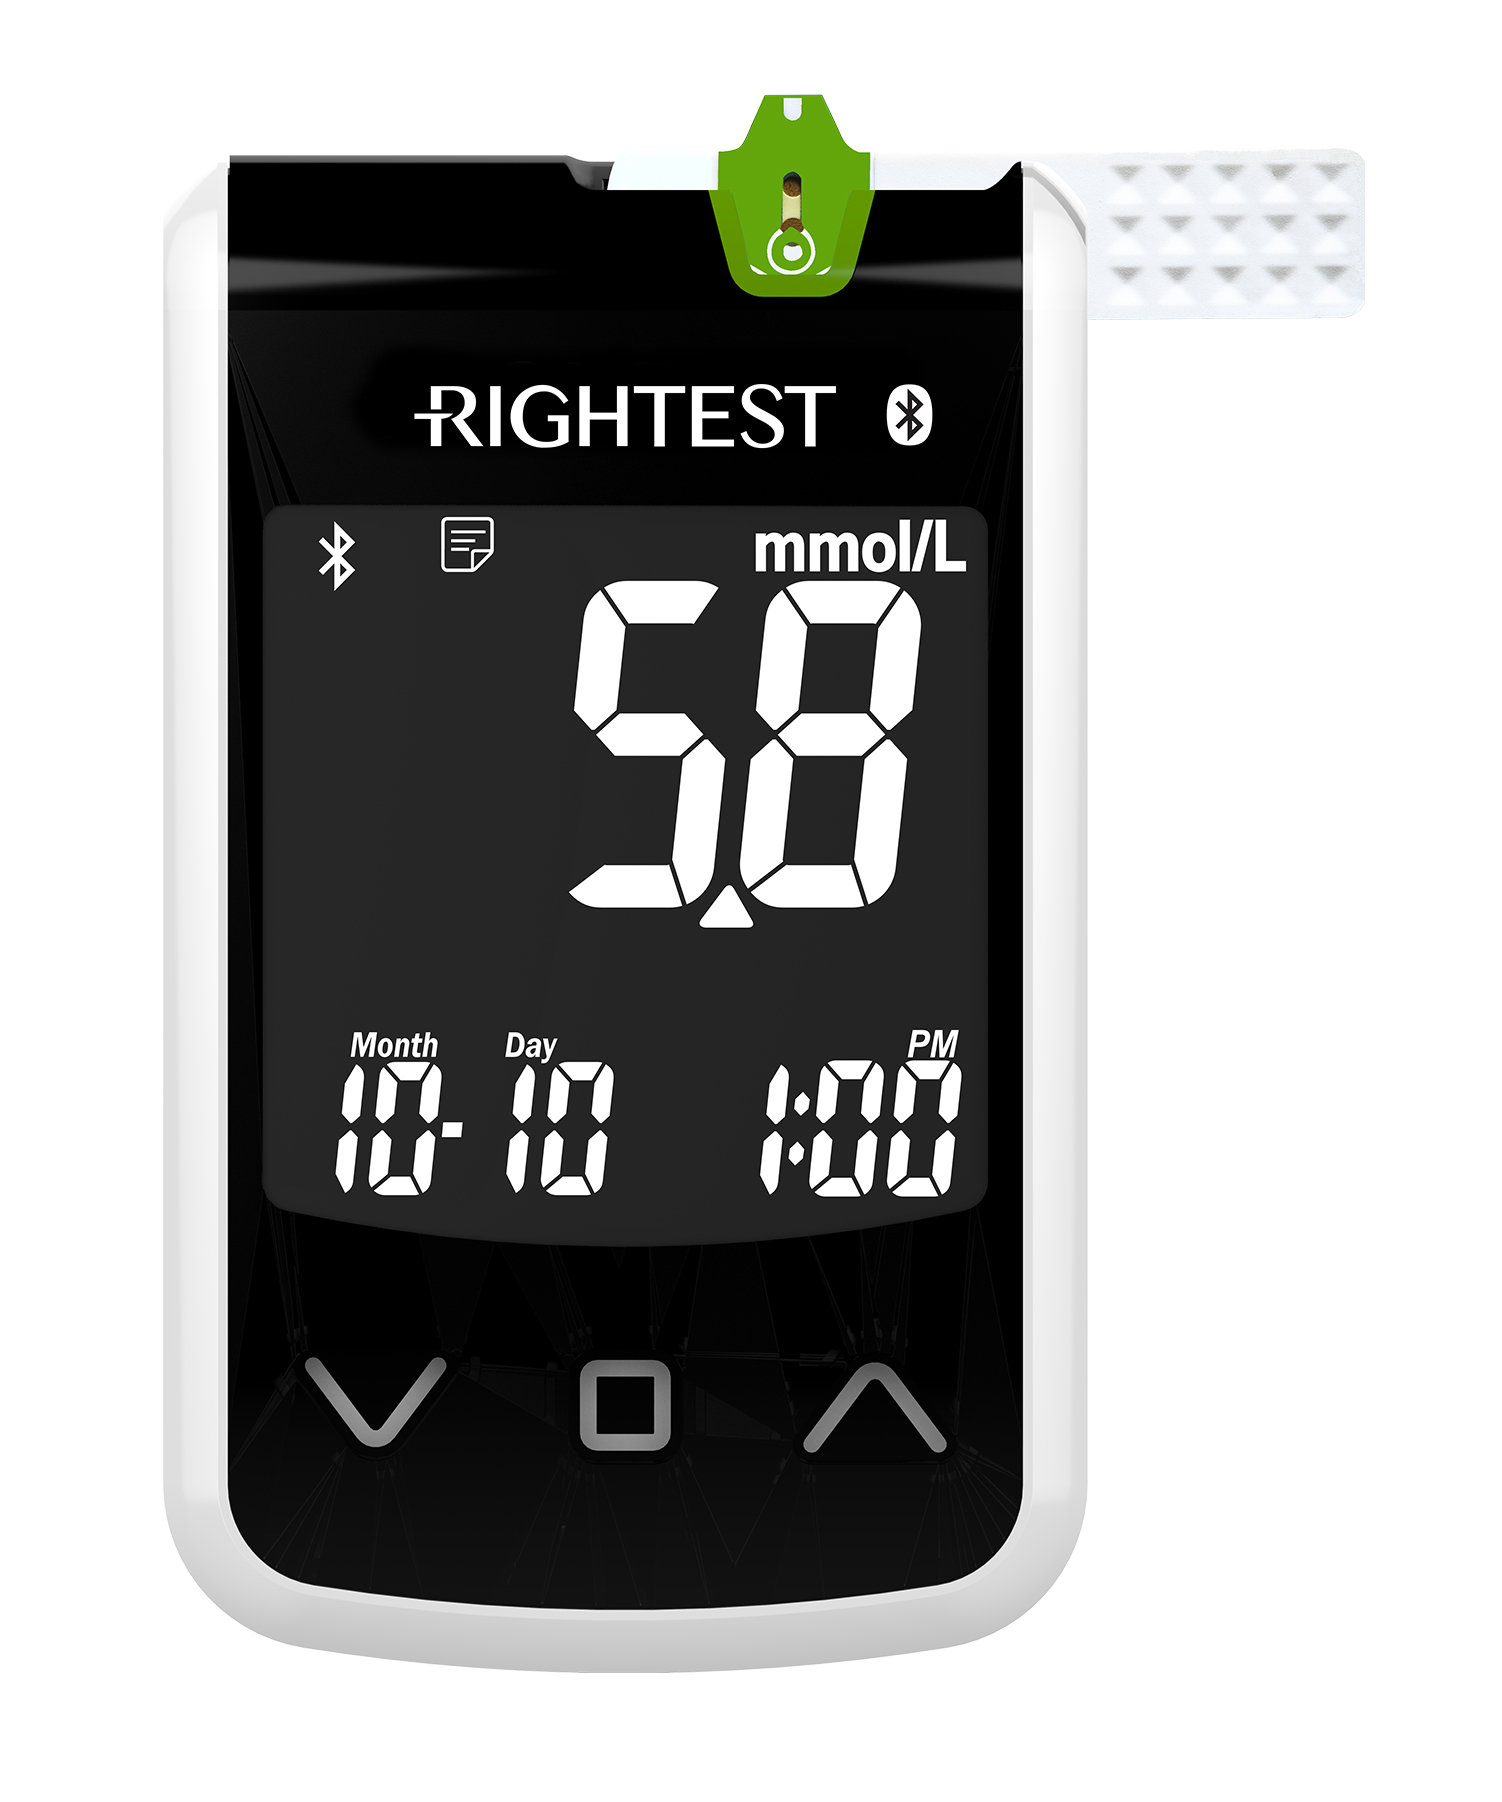 pro-img/05_Wiz/en/Wizplus-strip(mmol)-Rightest-glucose-meter.jpg